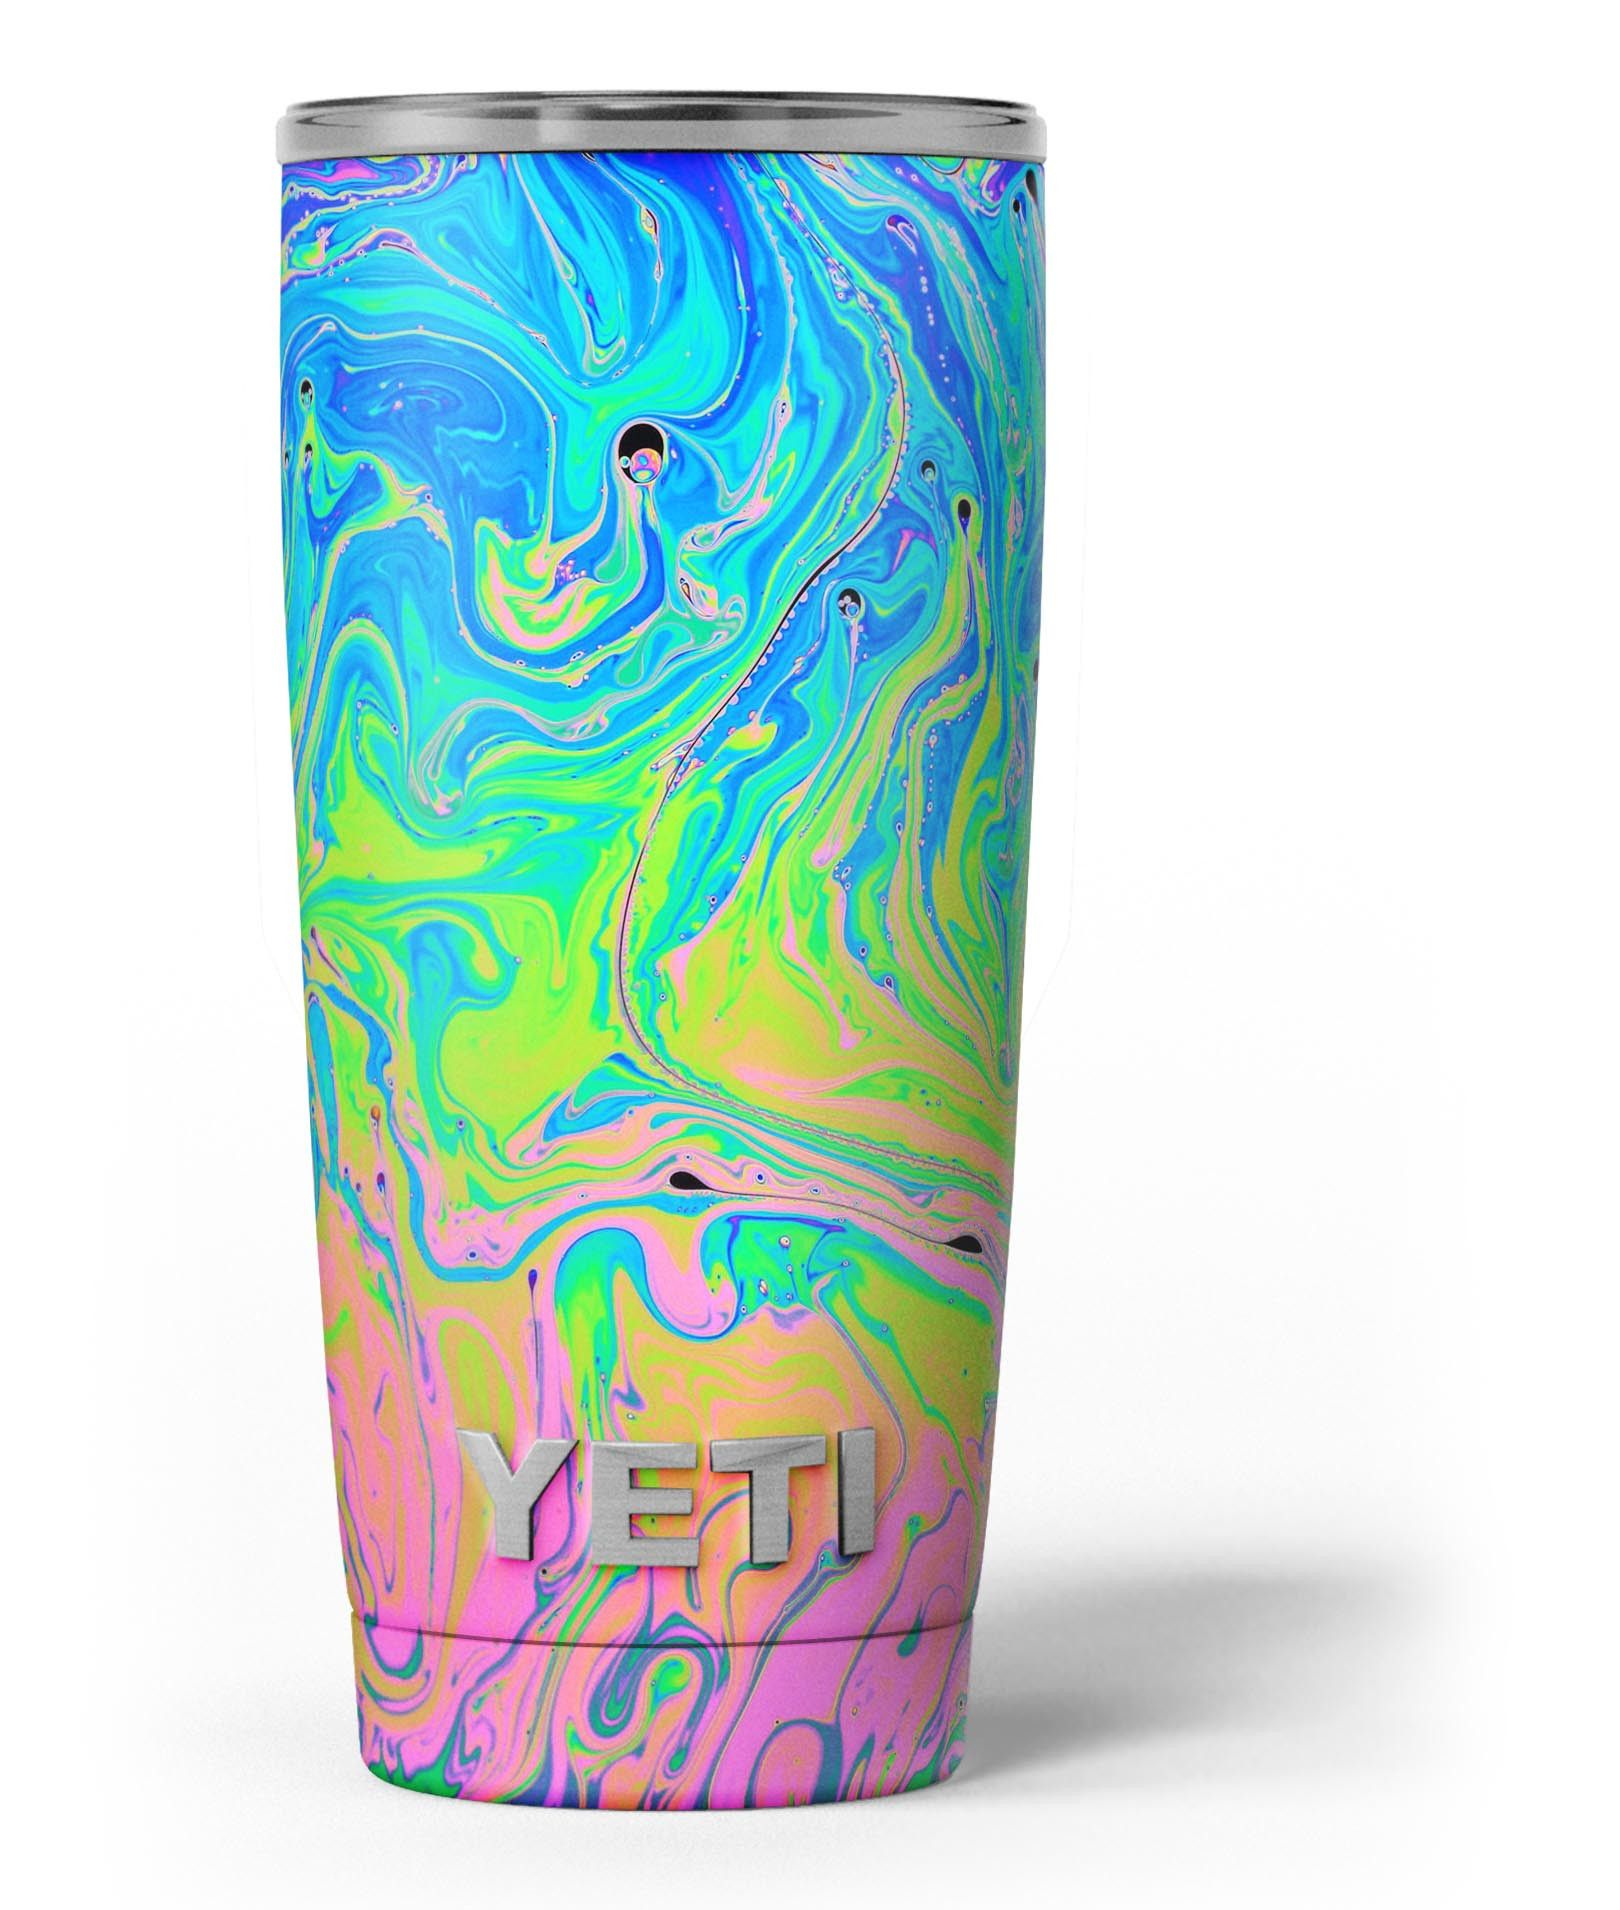 657f6cc6974 Neon Color Swirls Yeti Rambler Skin Kit | Cups | Decals for yeti ...